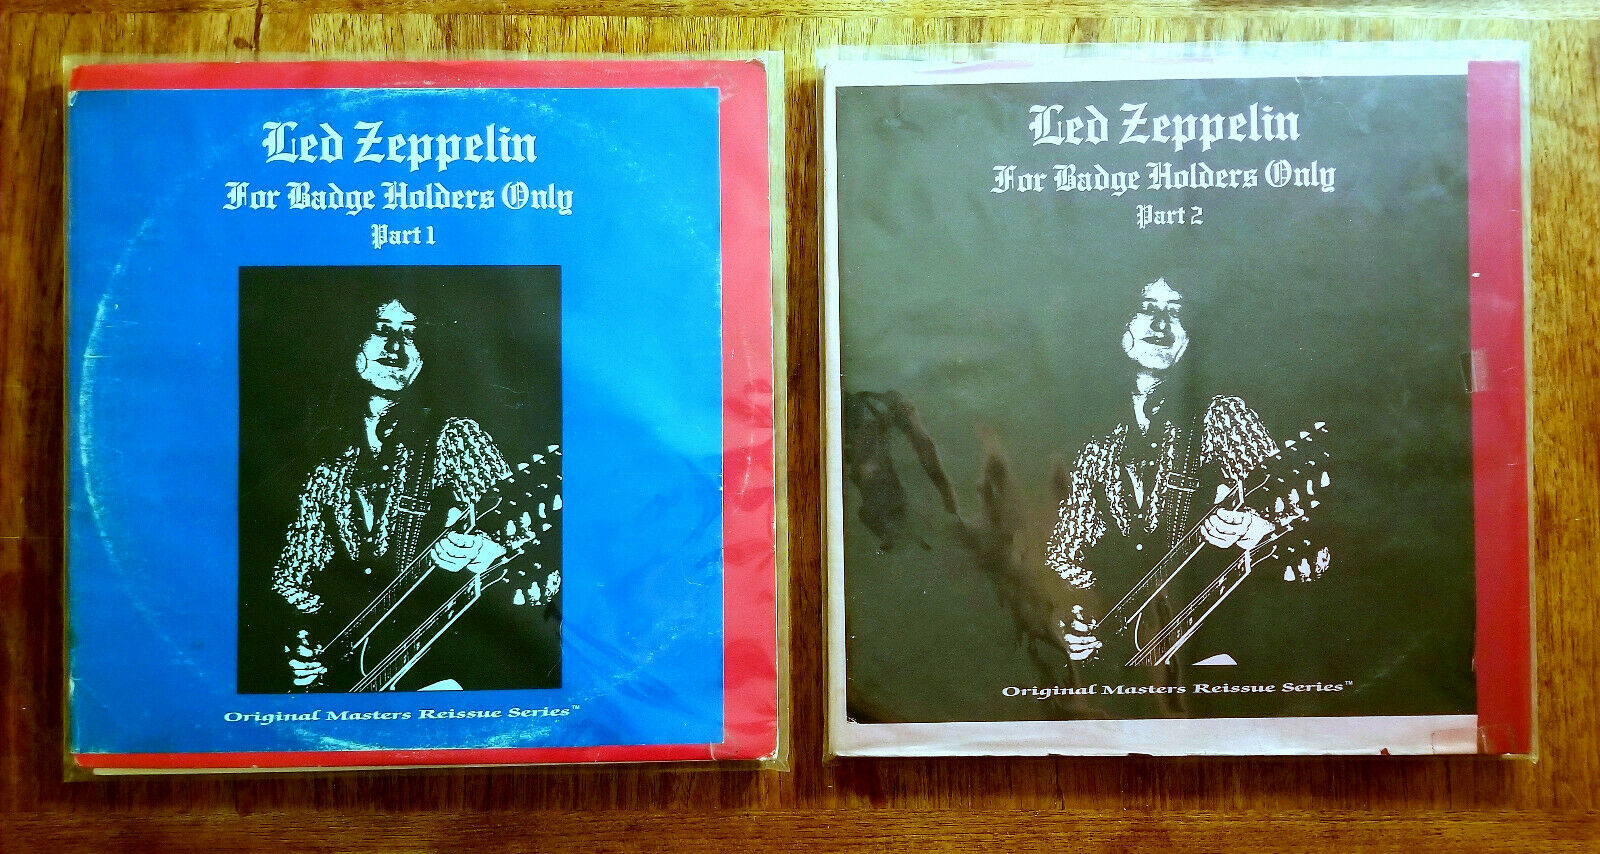 LED ZEPPELIN FOR BADGE HOLDERS ONLY PARTS 1 & 2 4XLP  LIVE BOOTLEG